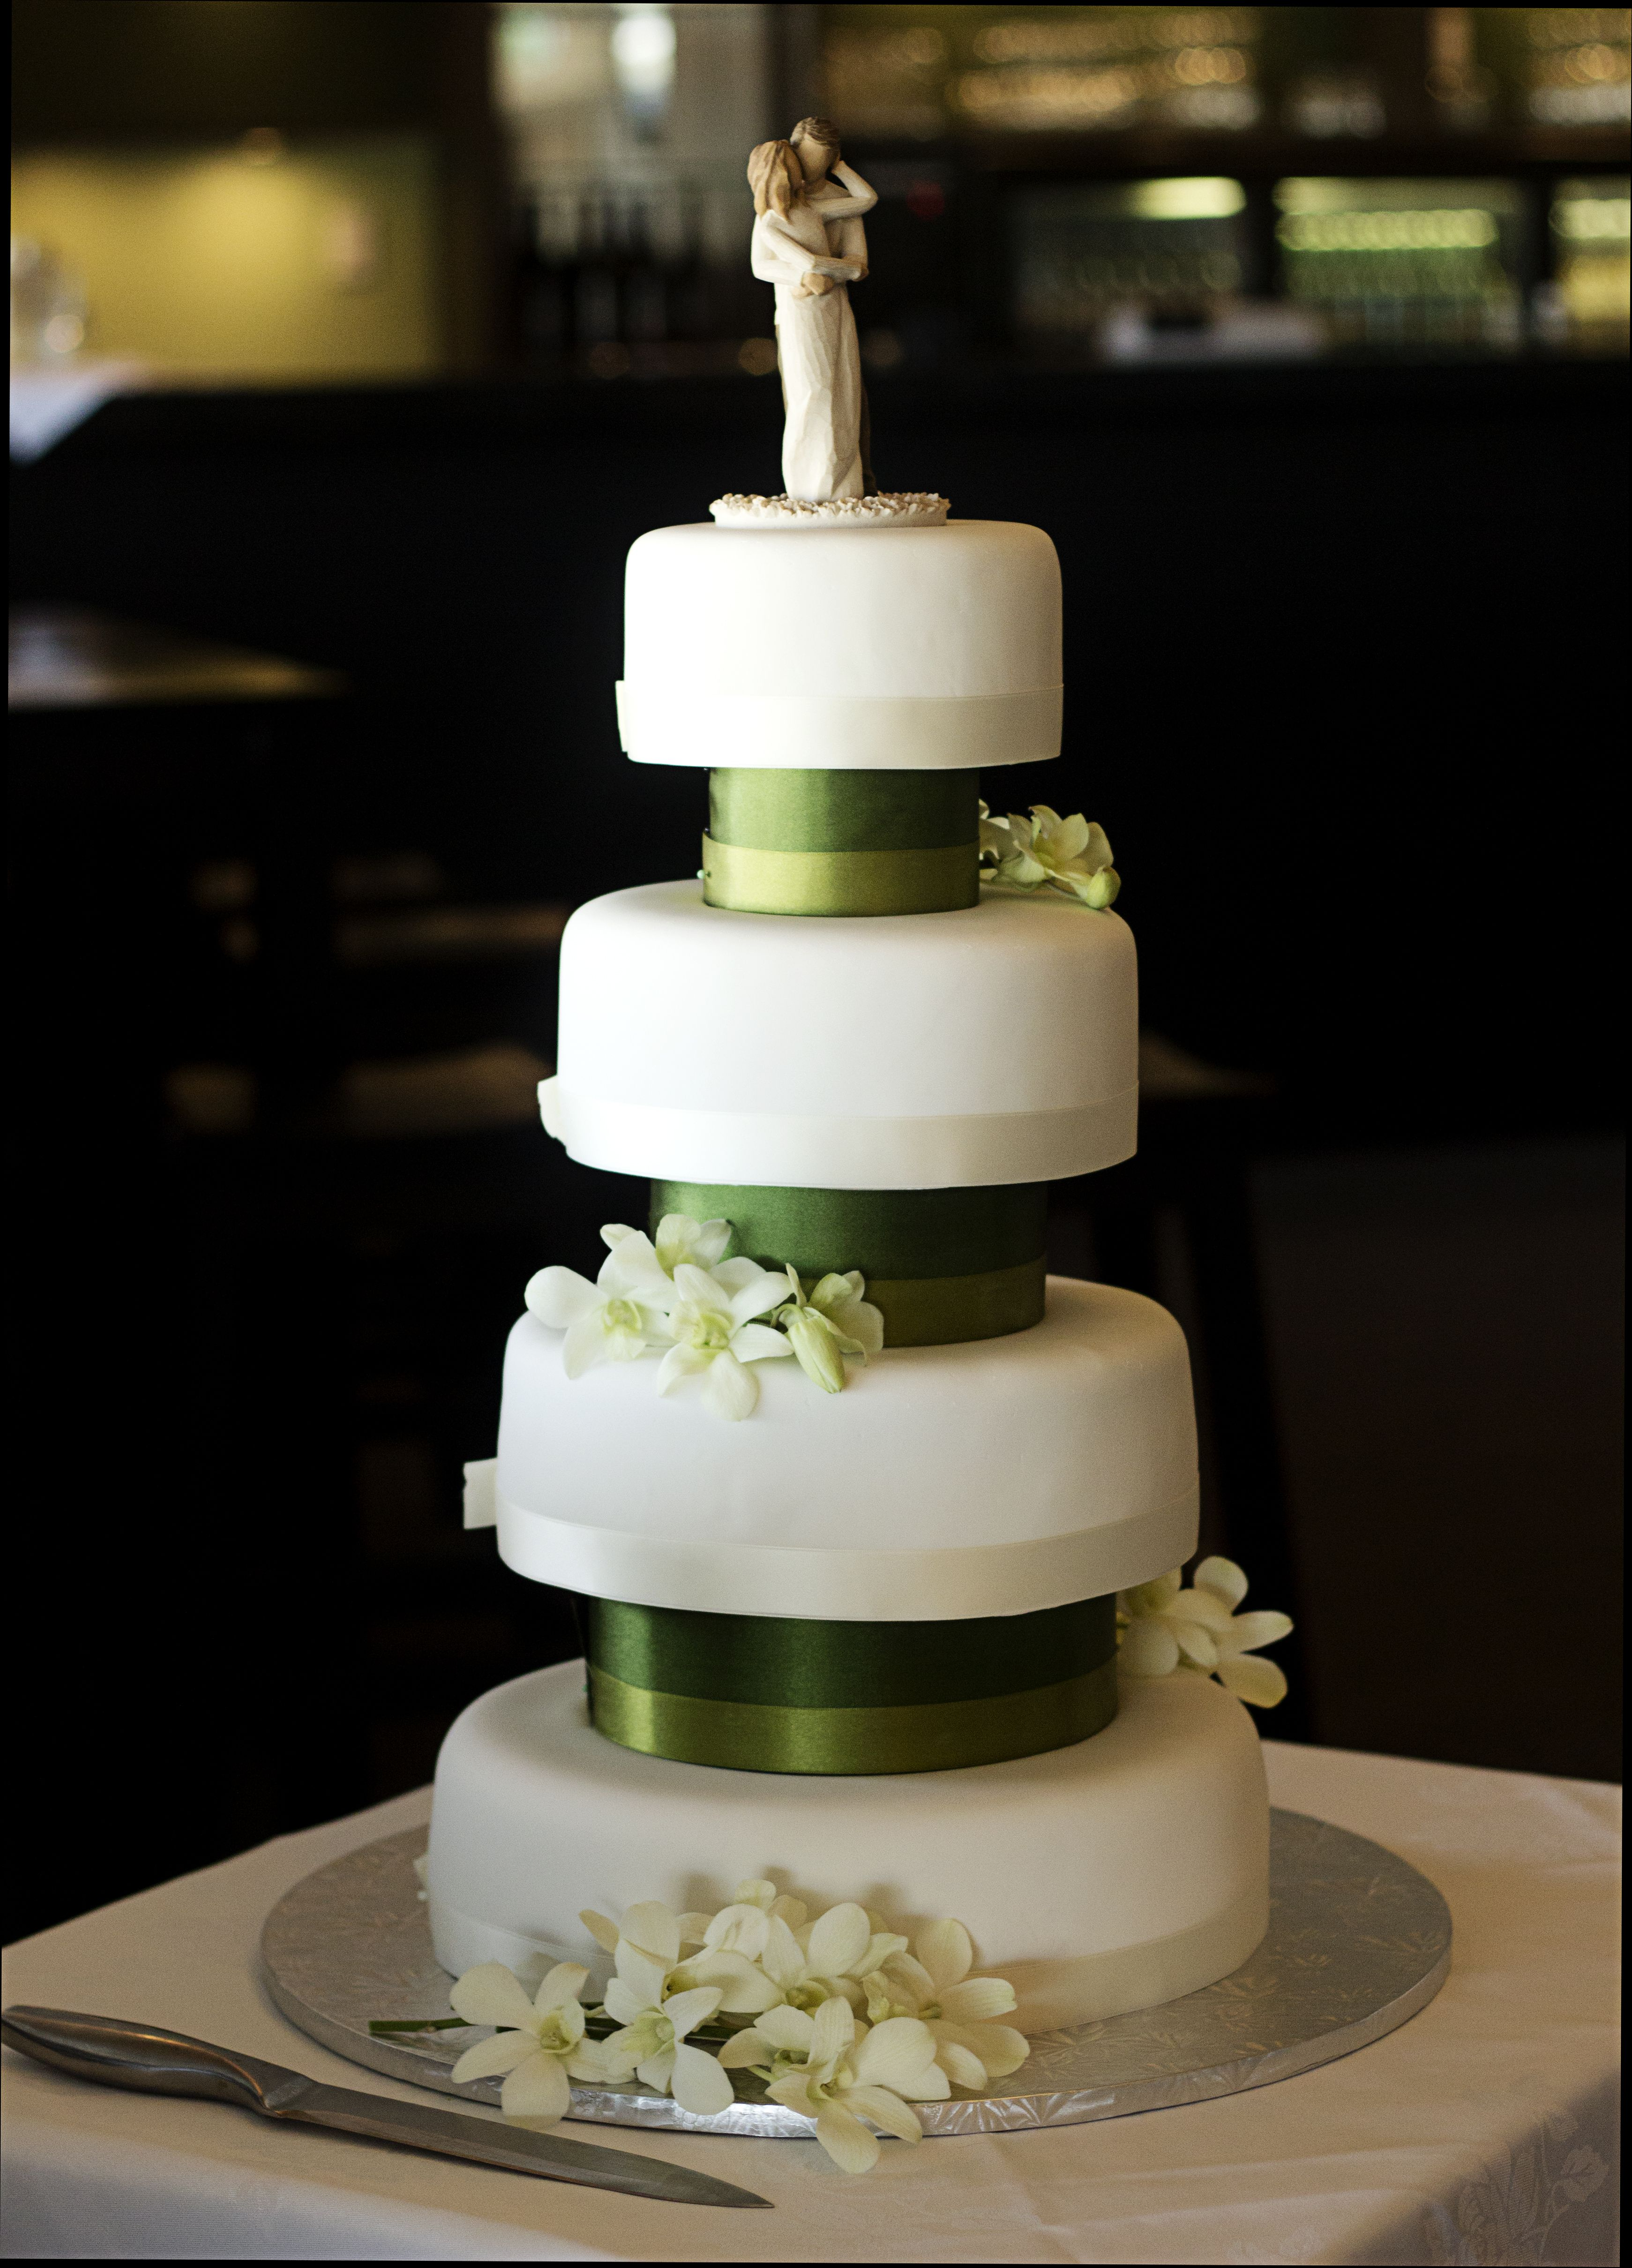 Decoration ideas for 50th wedding anniversary celebration  The wedding cake was made and decorated by the groom  Clear